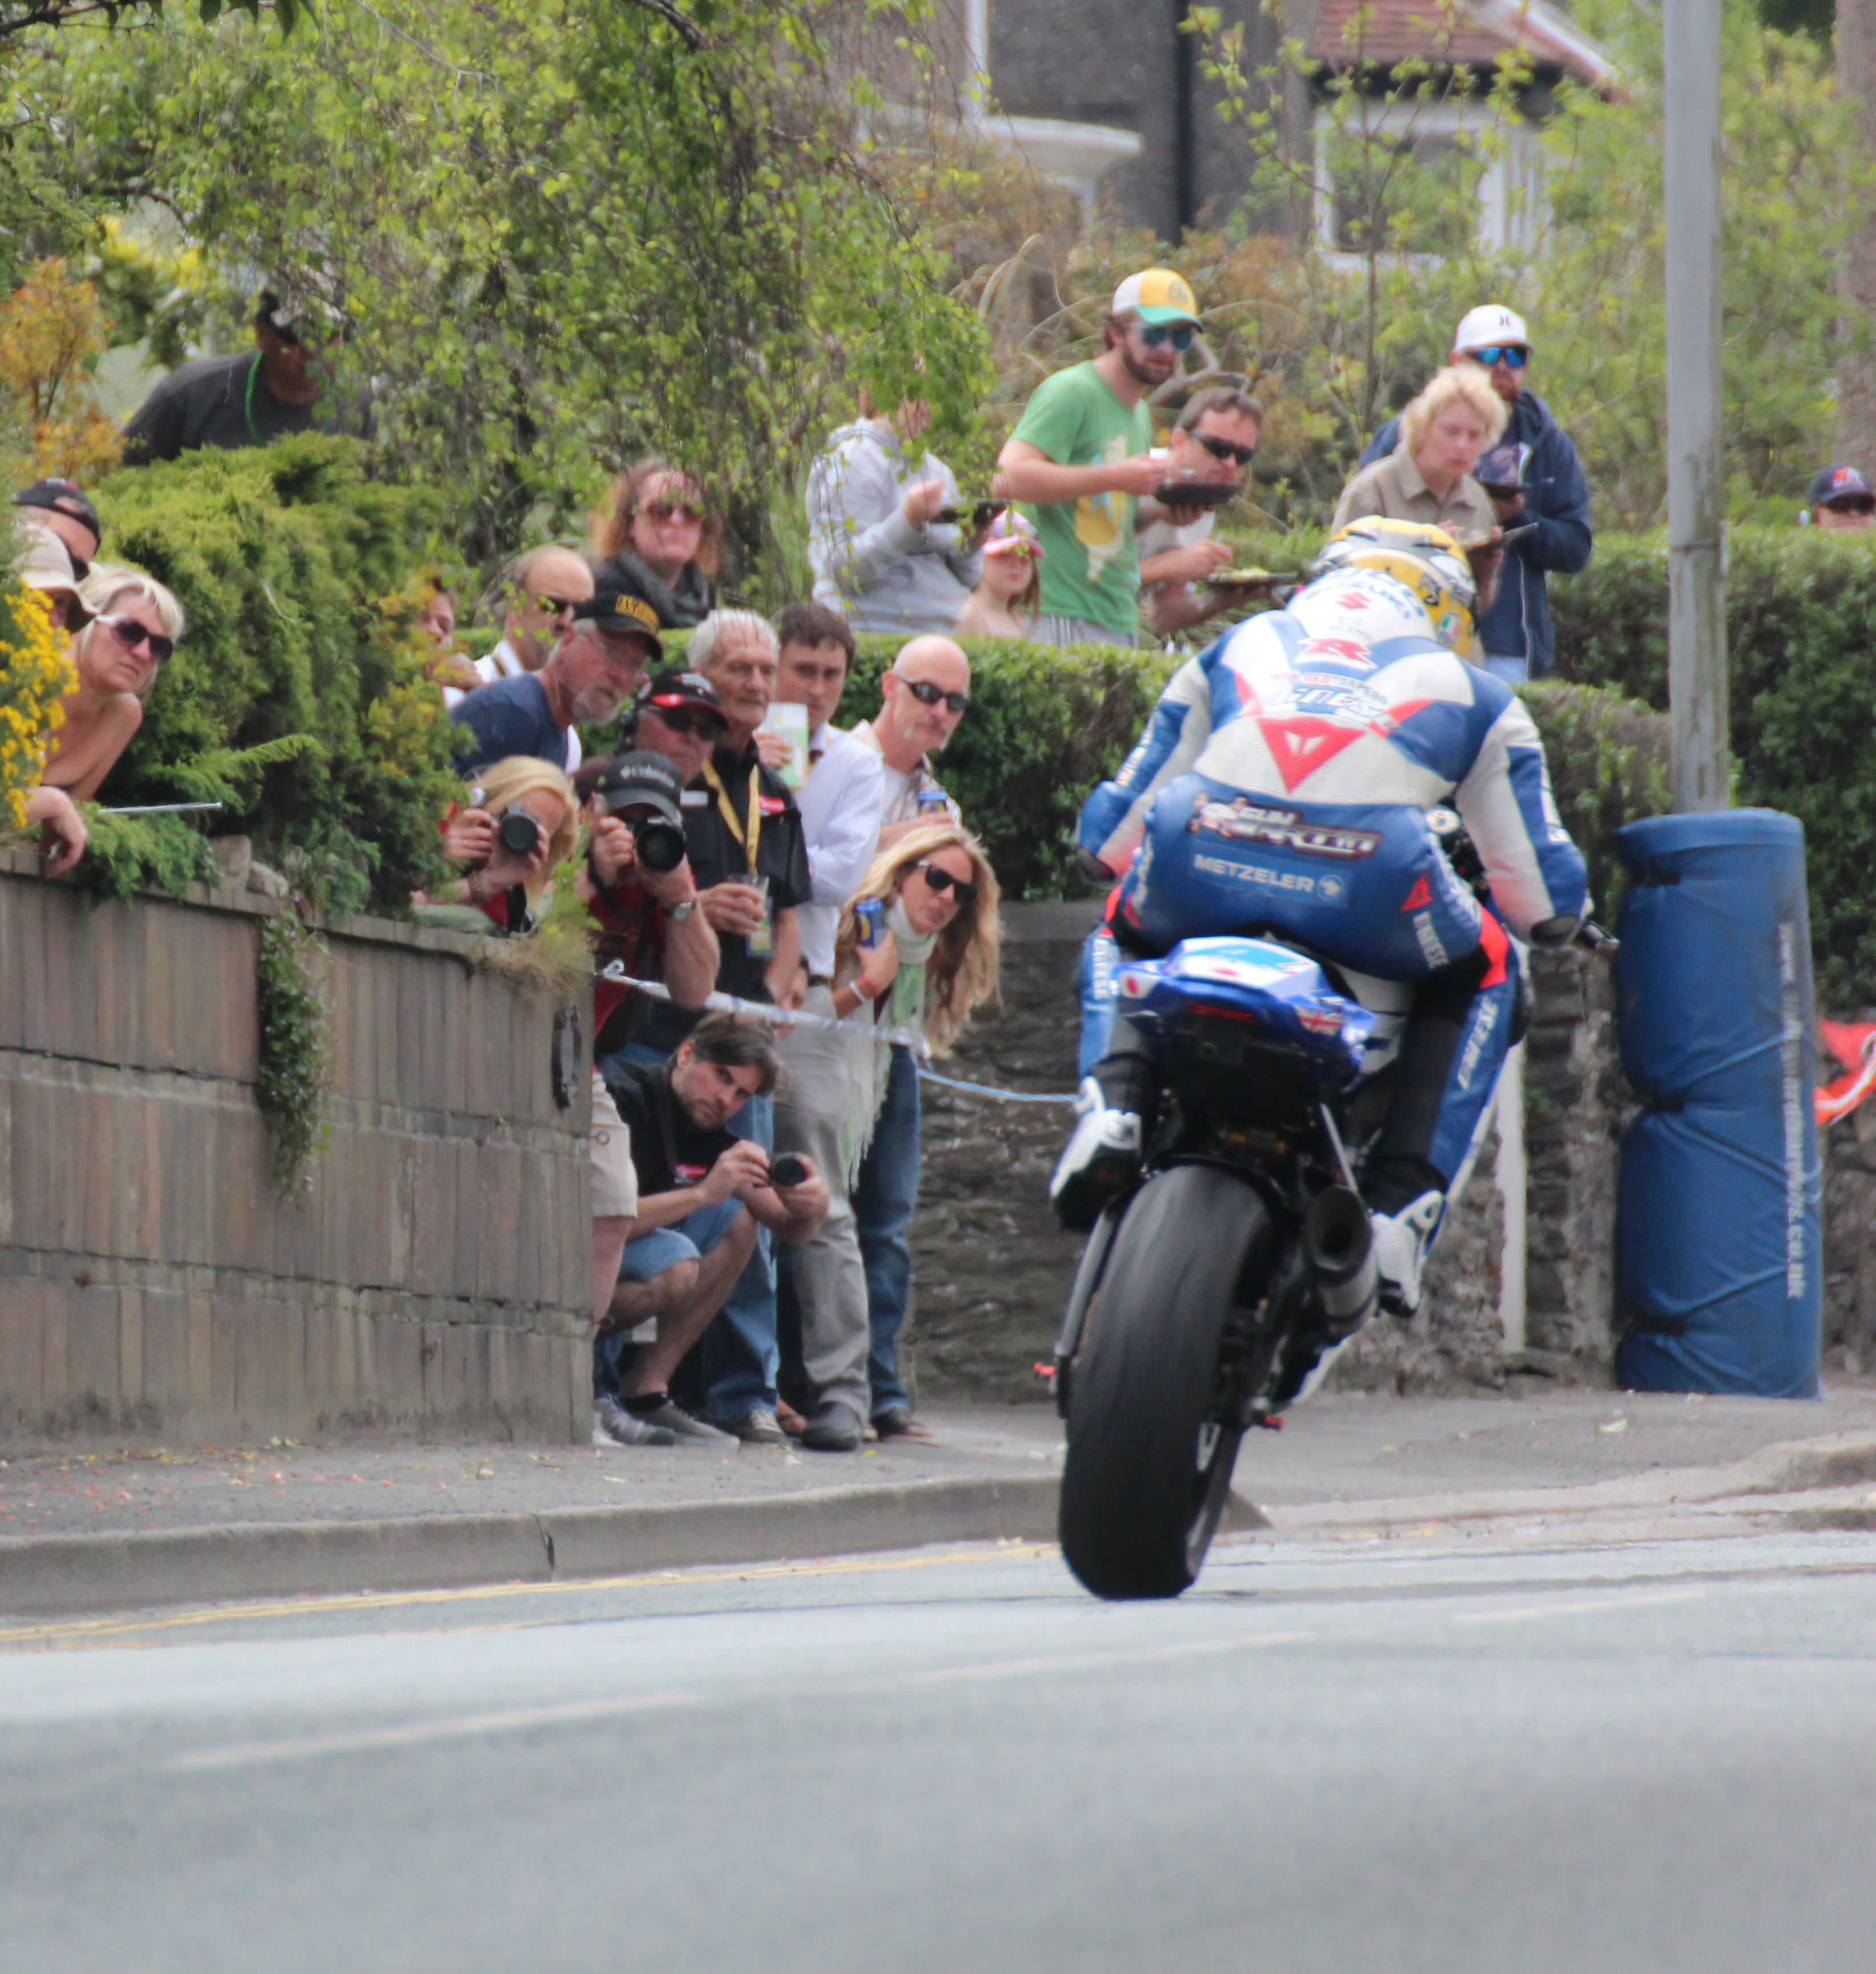 Watching the Isle of Man TT from a hedge!